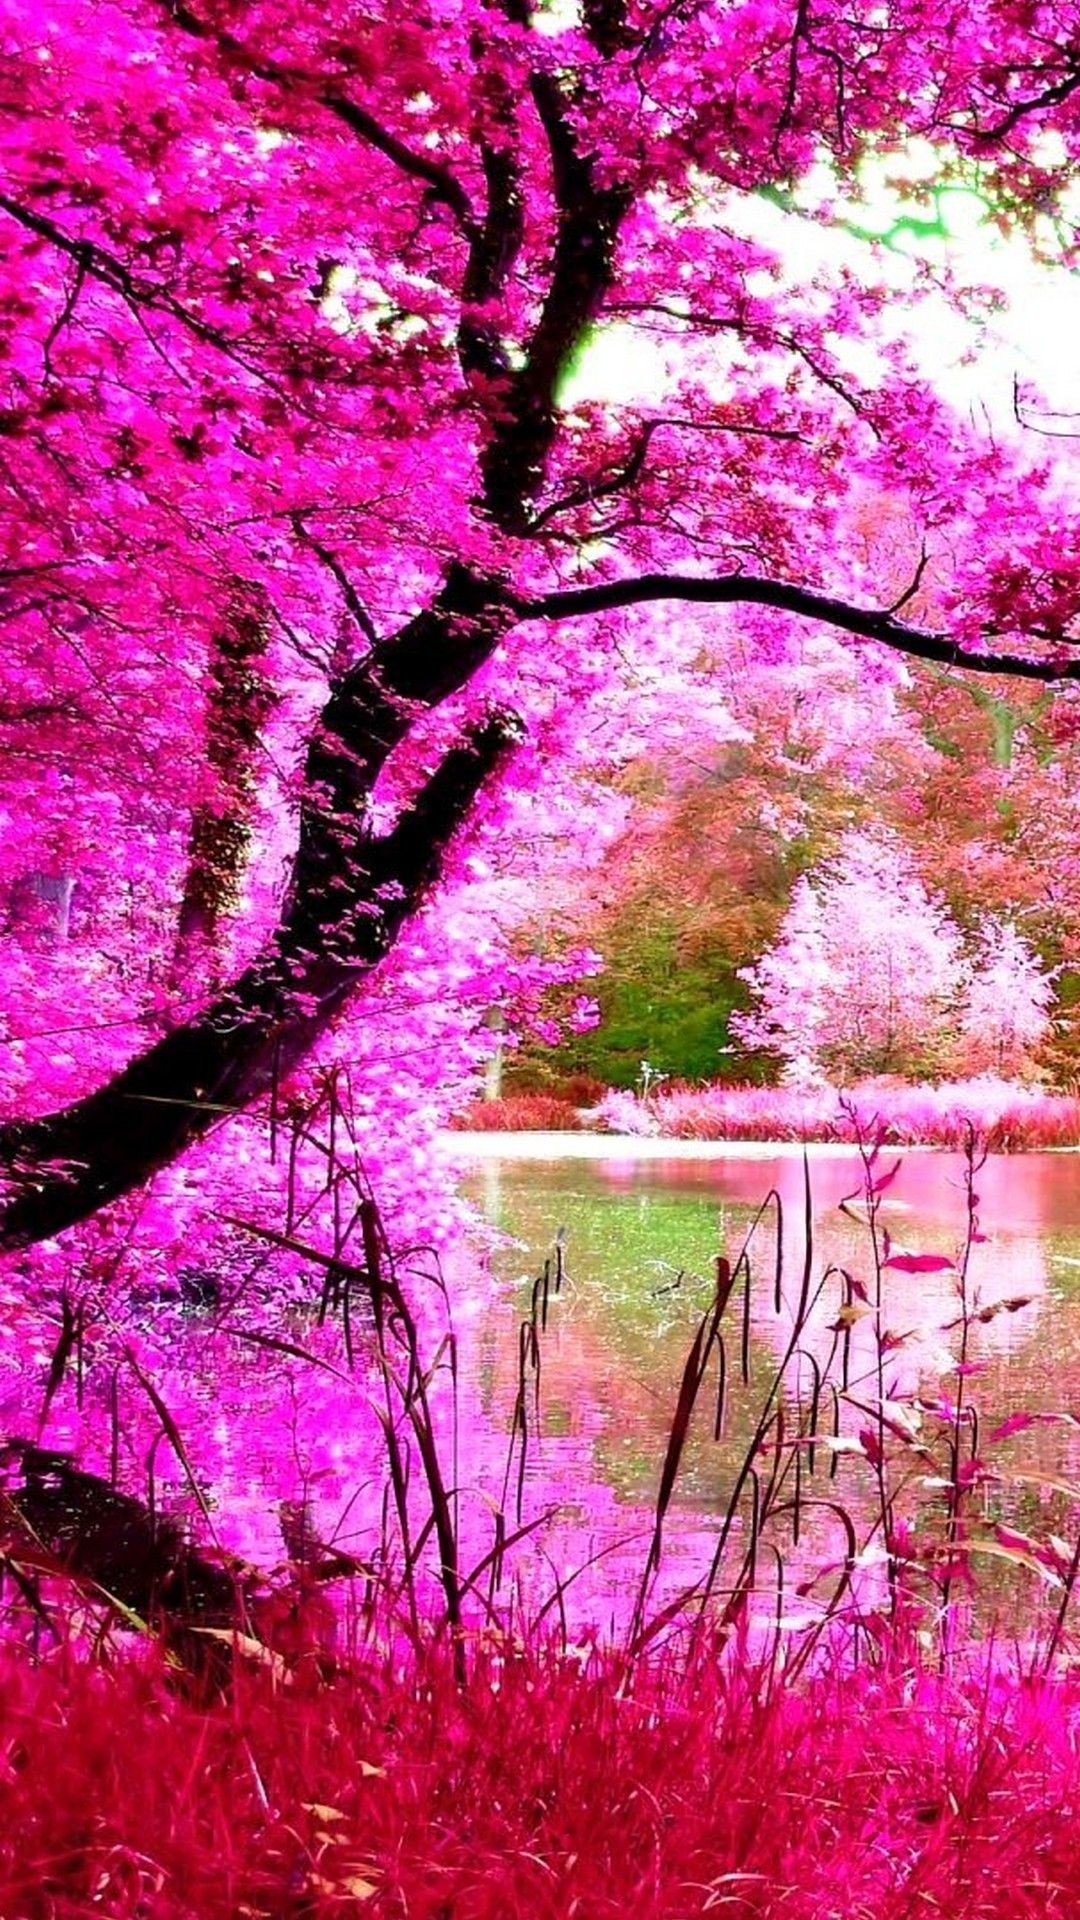 Beautiful Pink Nature Iphone Wallpaper   Pink Nature Wallpaper Hd 1080x1920